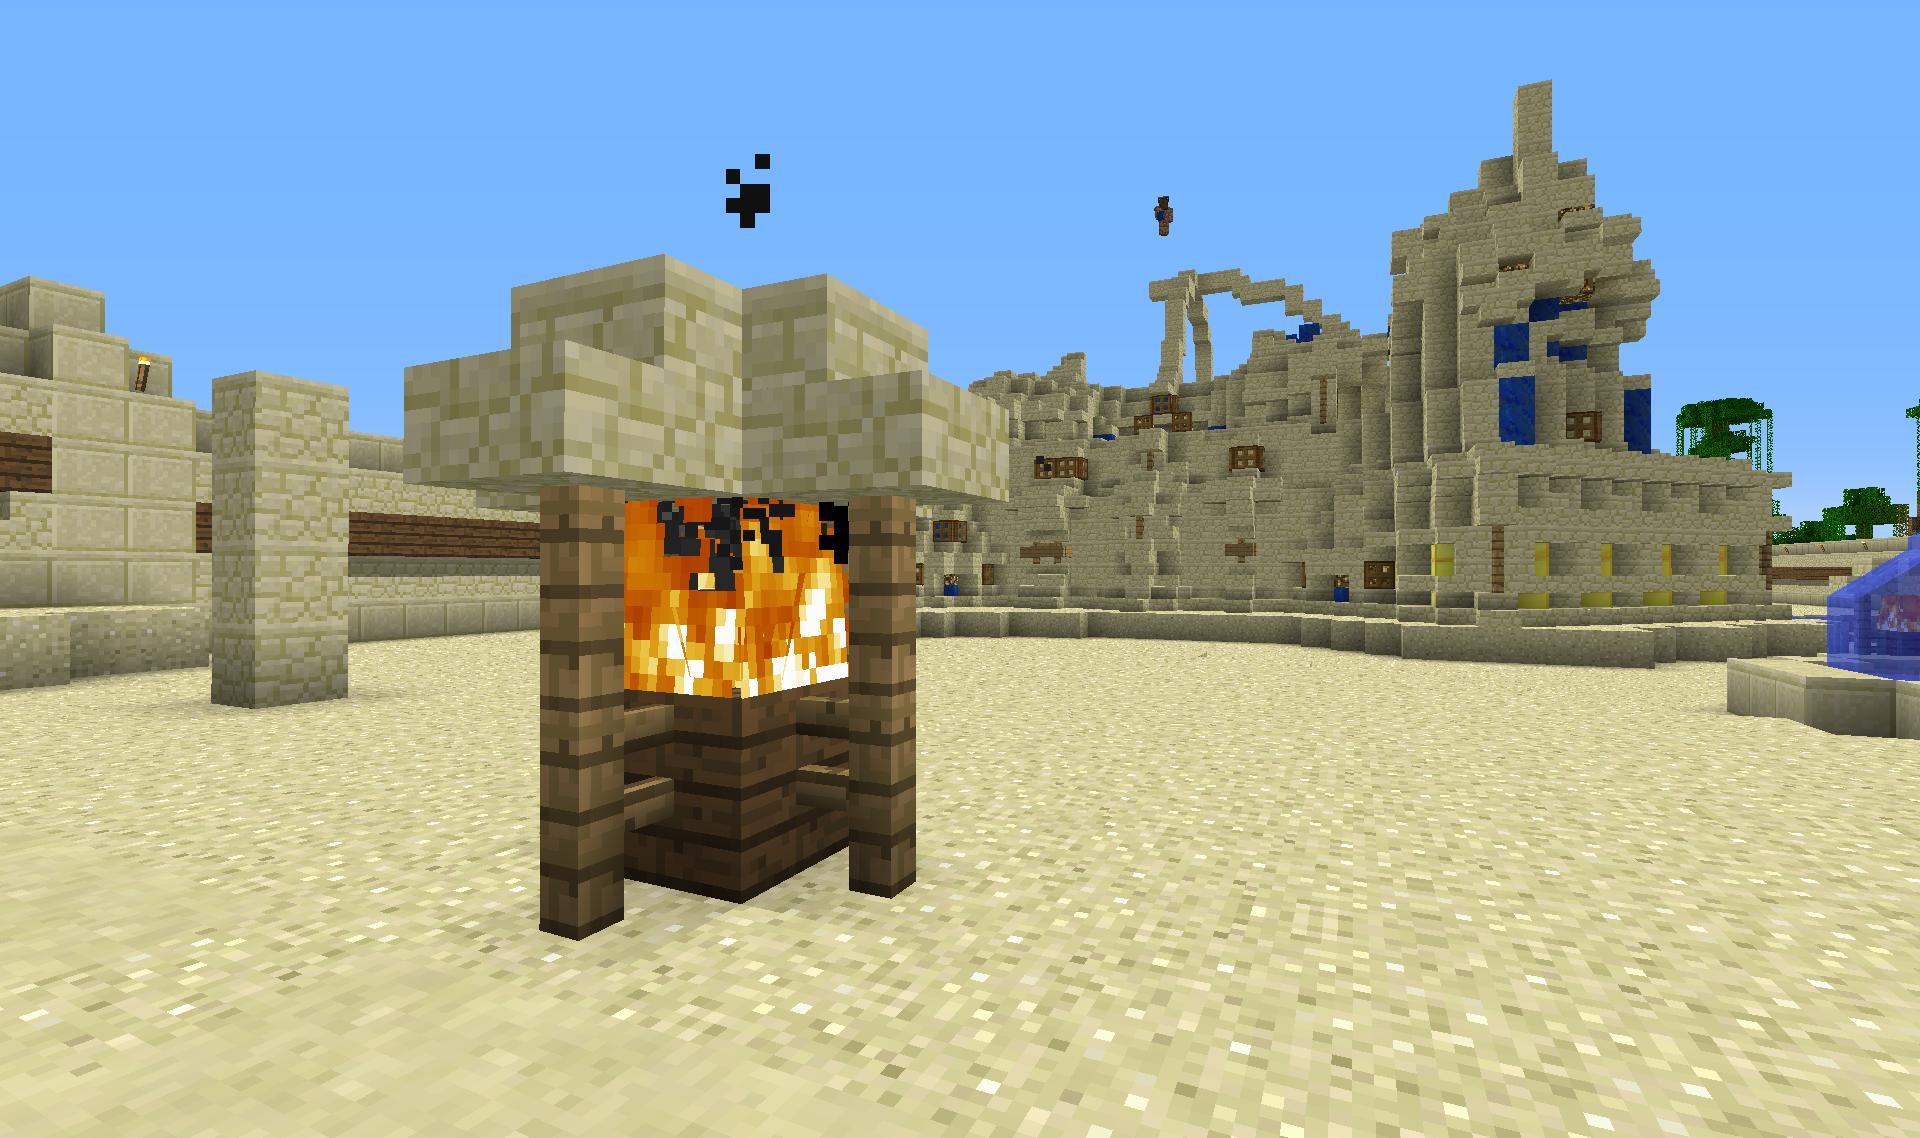 Free download Minecraft Pocket Edition Kindle Fire Hd A Simple